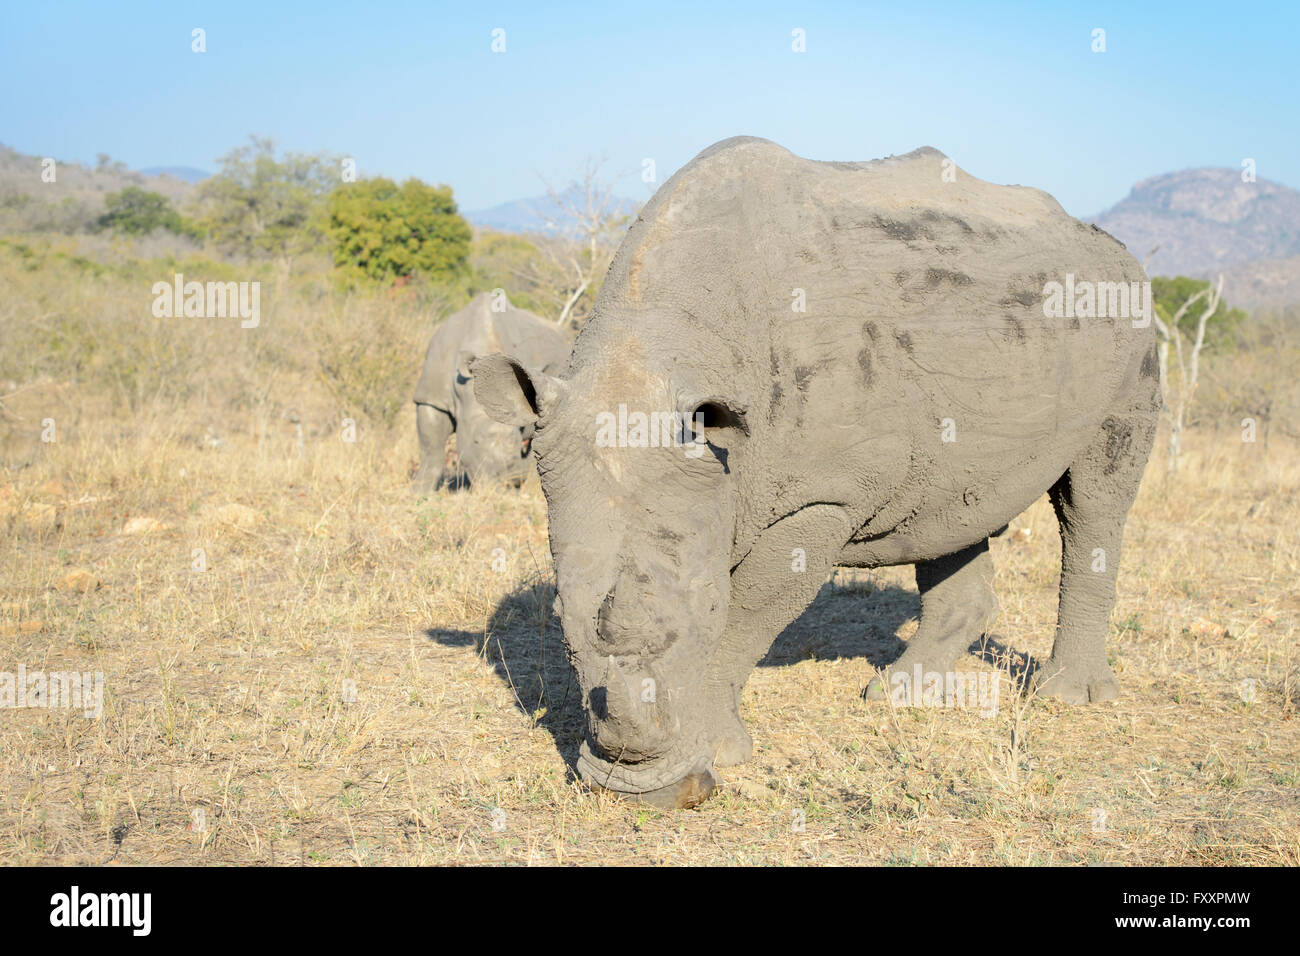 White rhino (Ceratotherium simum) pair in the southern part of the Kruger National Park, South Africa - Stock Image